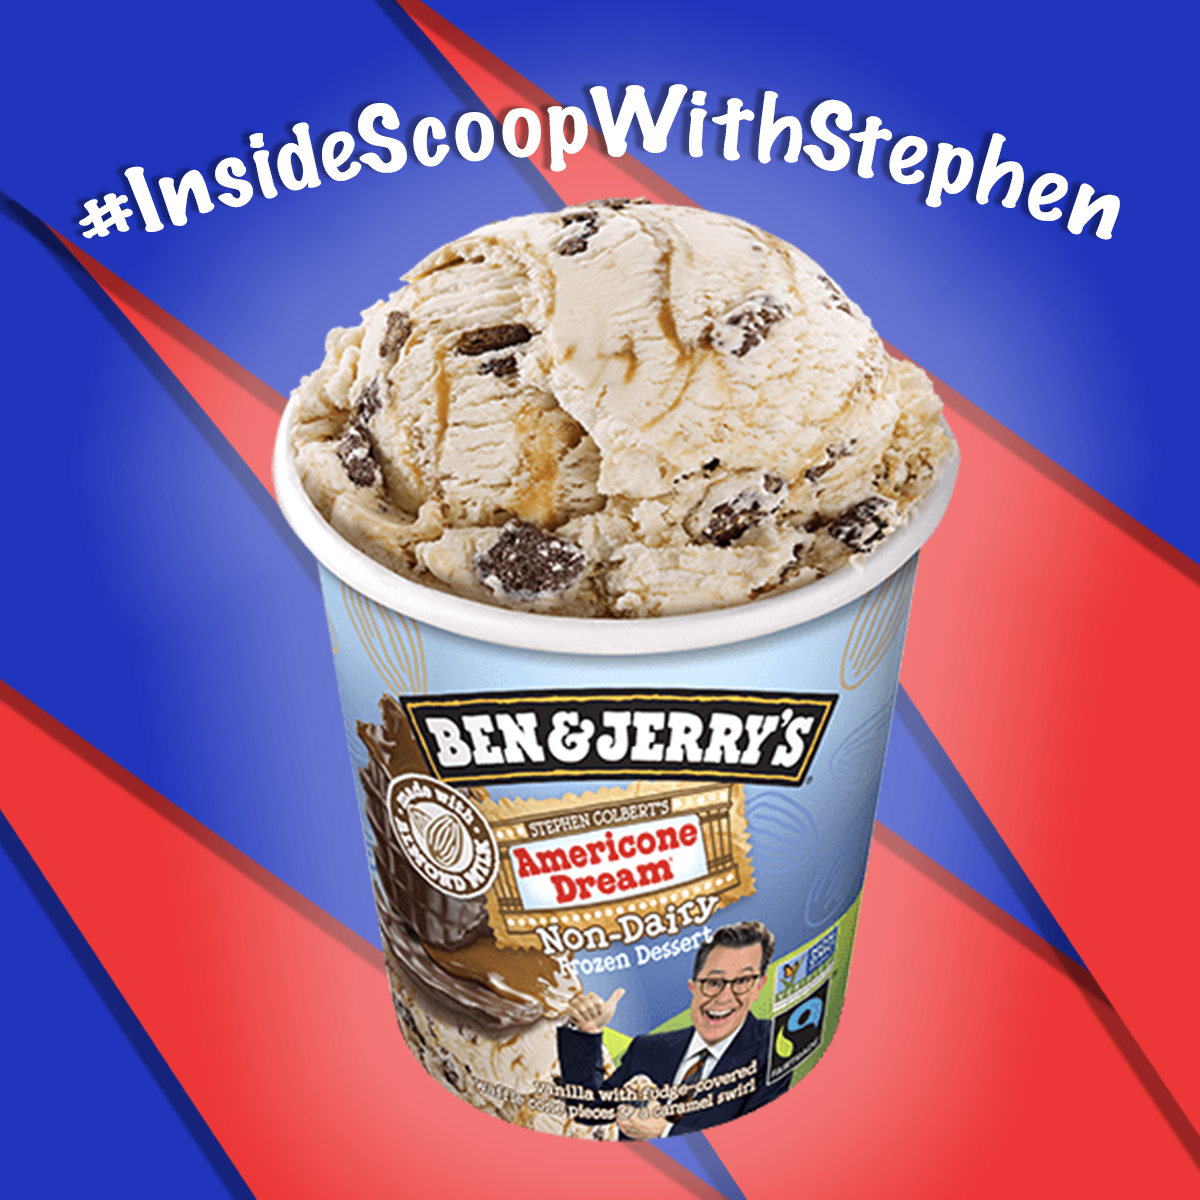 The vegan nondairy Americone Dream is here! Use #InsideScoopWithStephen to ask me questions about my ice cream, The Americone Dream Fund's charitable efforts or anything vegan-related that's on your mind.  Fun fact: the container is vegan, too. But I wouldn't recommend eating it.